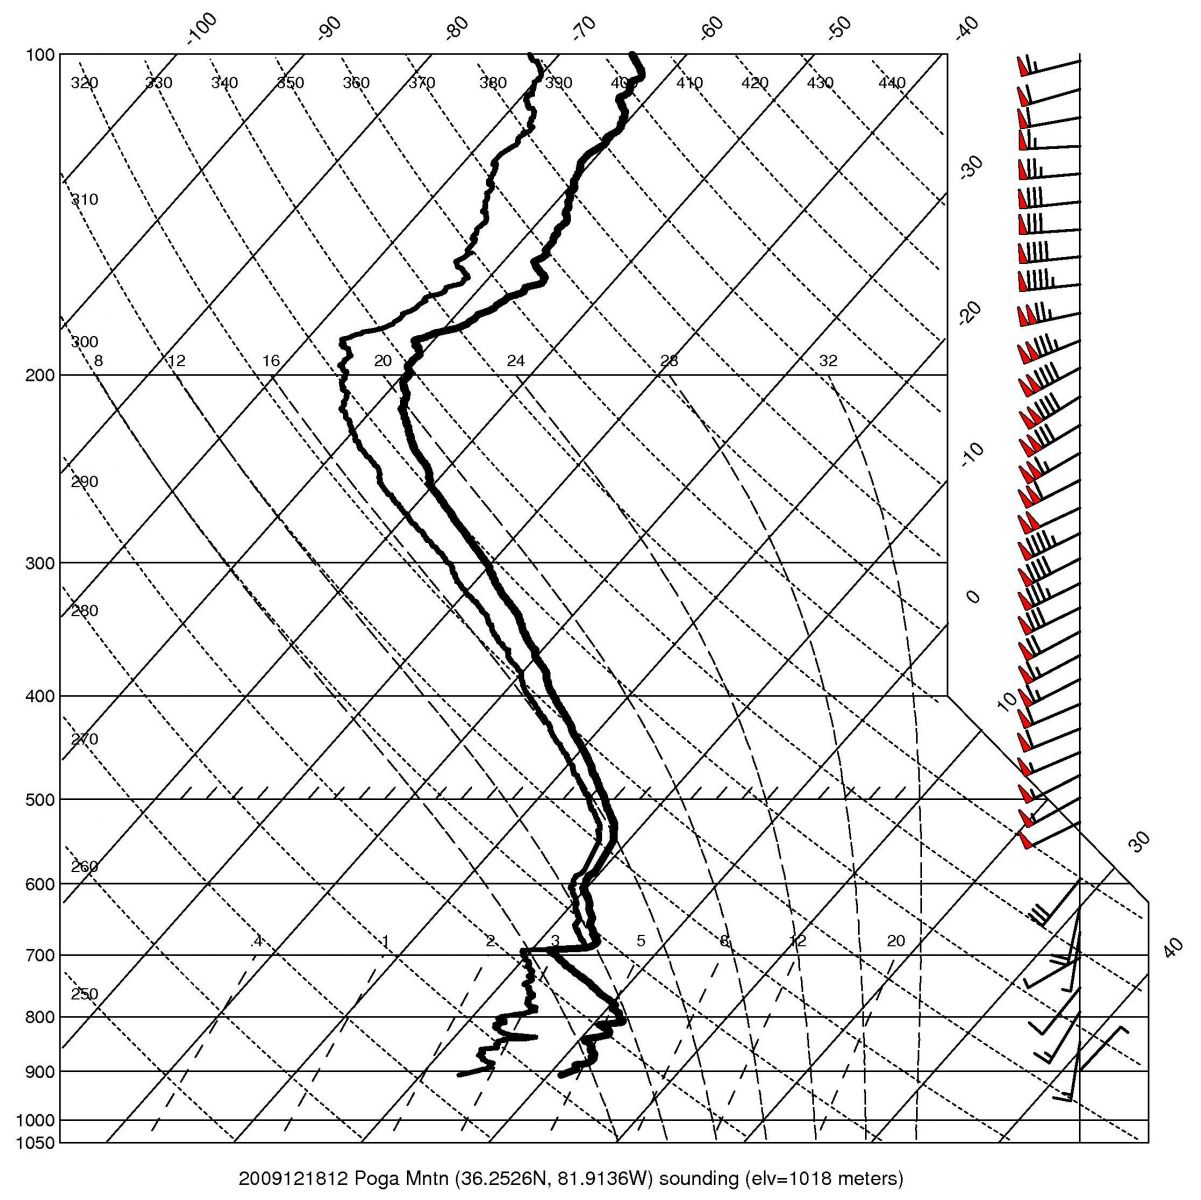 Observed upper air sounding at Poga Mtn., NC, at 1200 UTC on 18 December